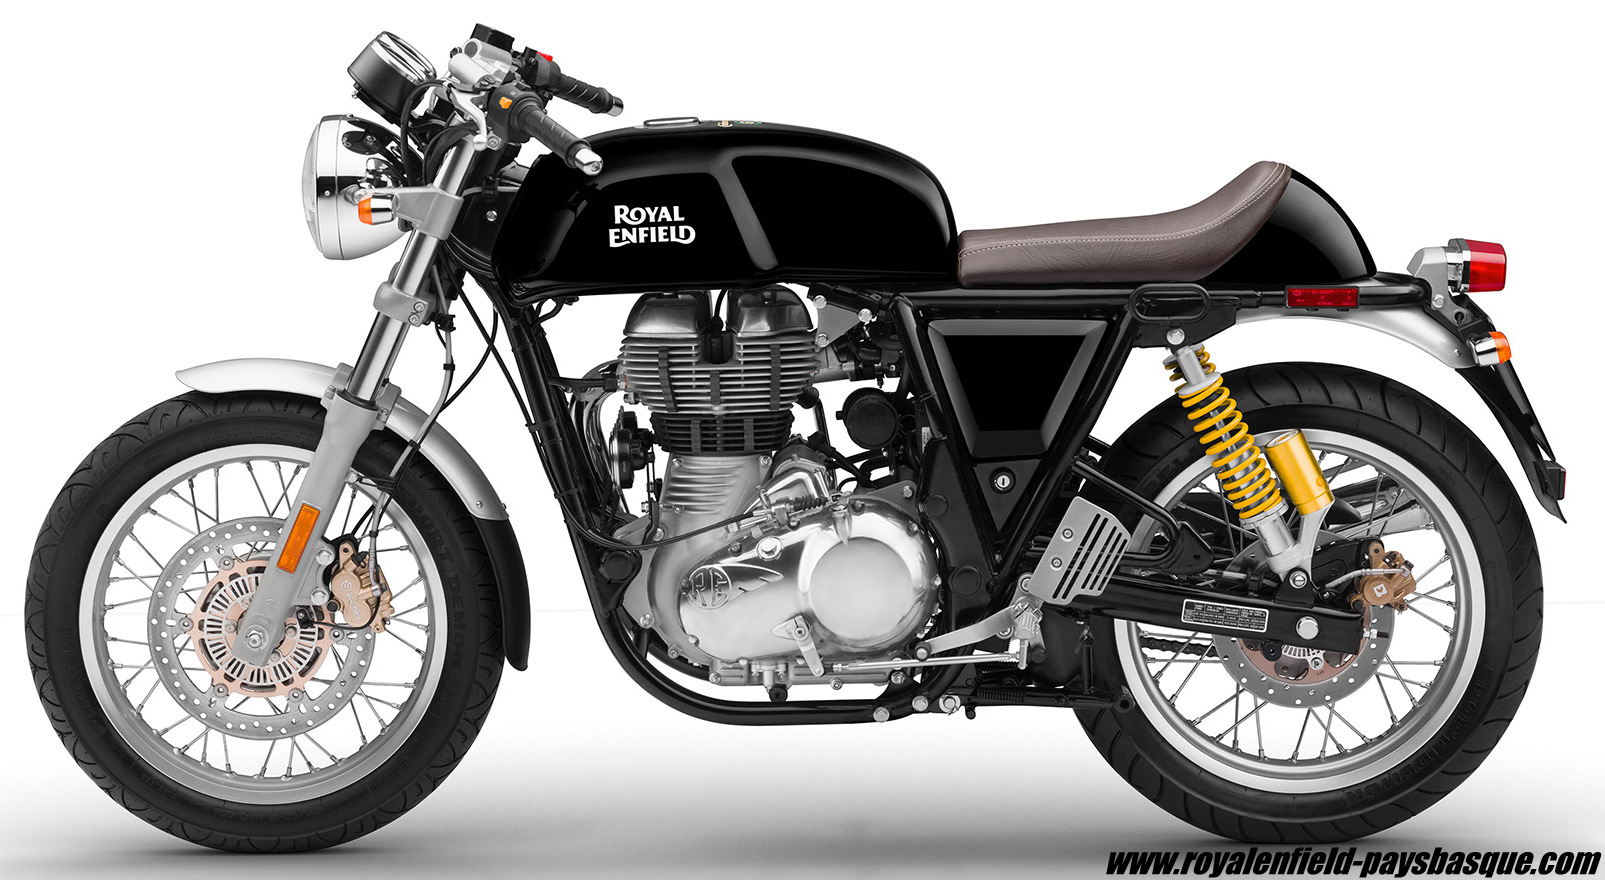 continental gt 535 noire royal enfield pays basque. Black Bedroom Furniture Sets. Home Design Ideas